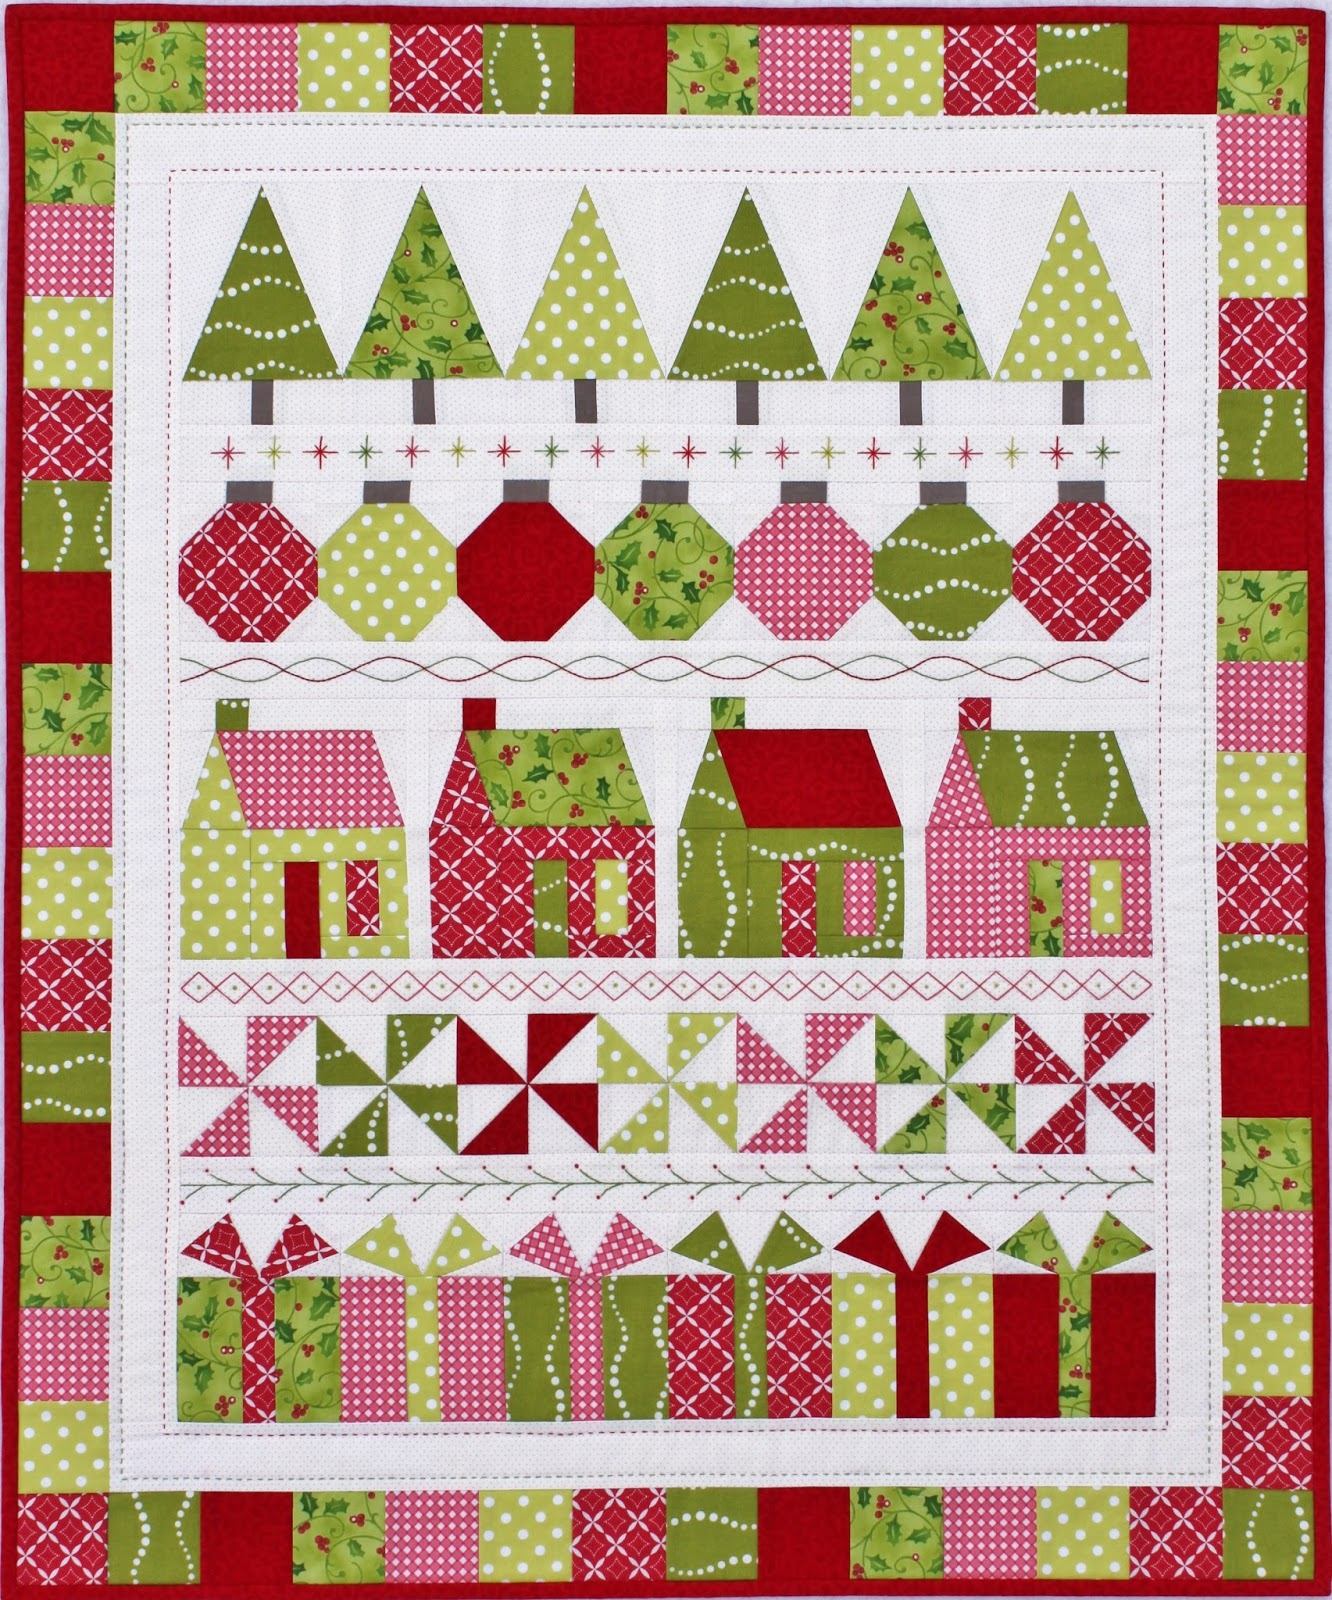 Jen Daly Quilts: Merry and Bright - Day 12! : bright quilts - Adamdwight.com